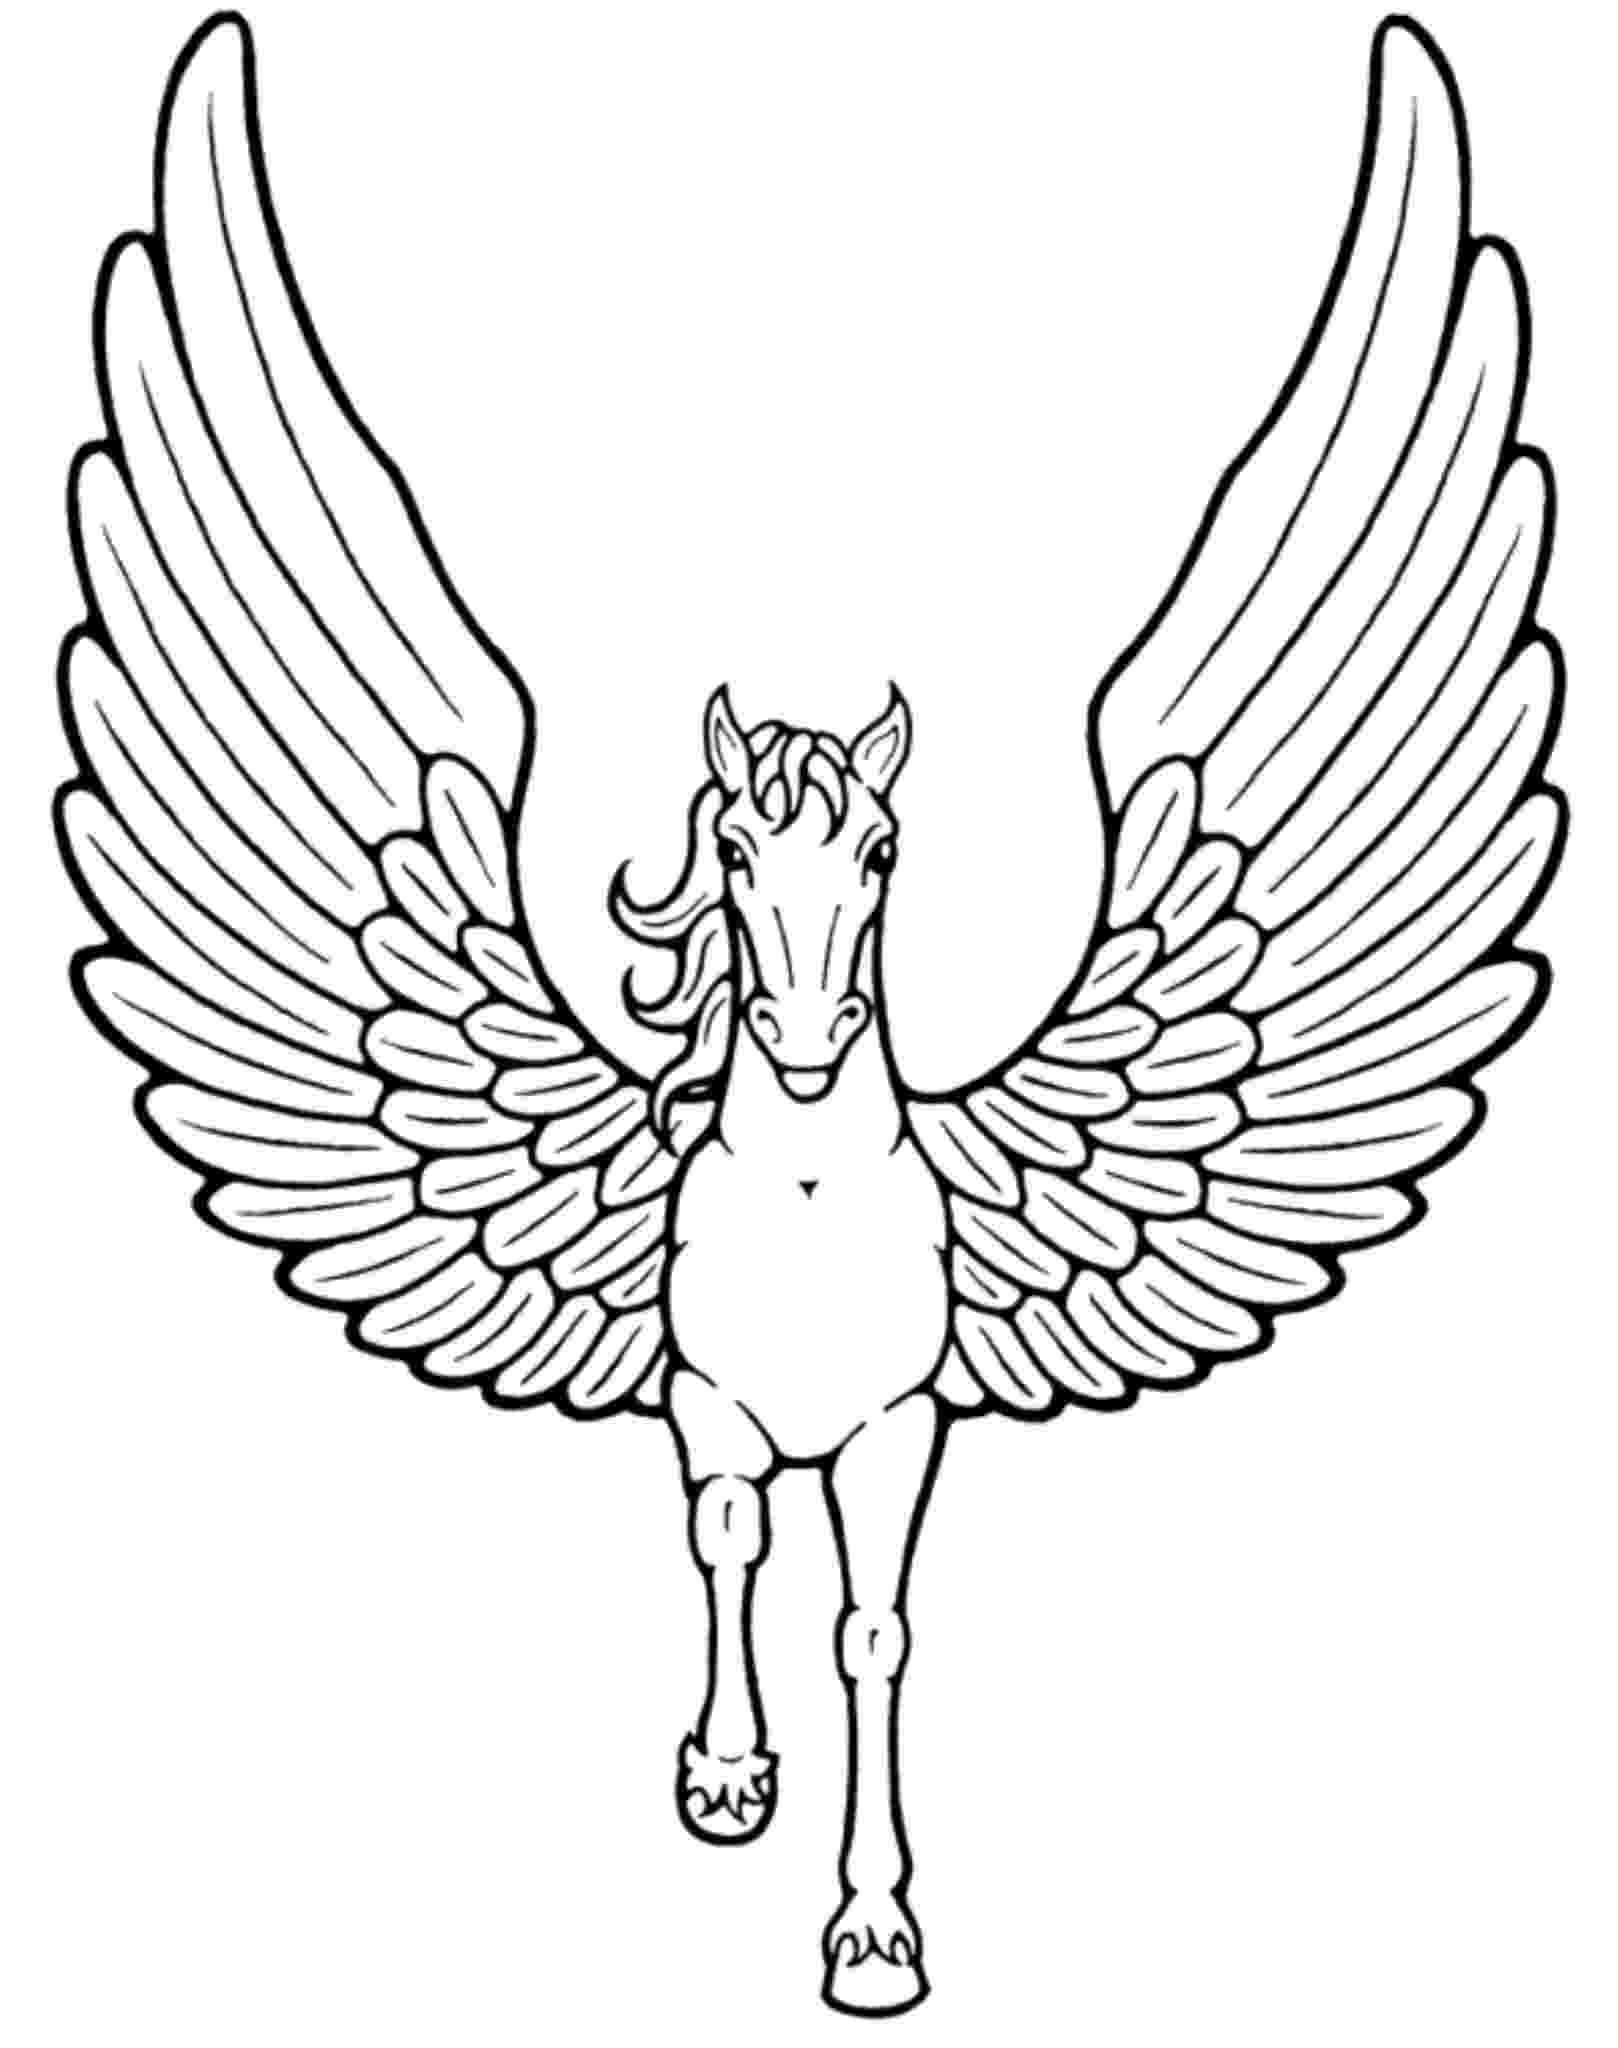 coloring page unicorn 41 magical unicorn coloring pages coloring unicorn page